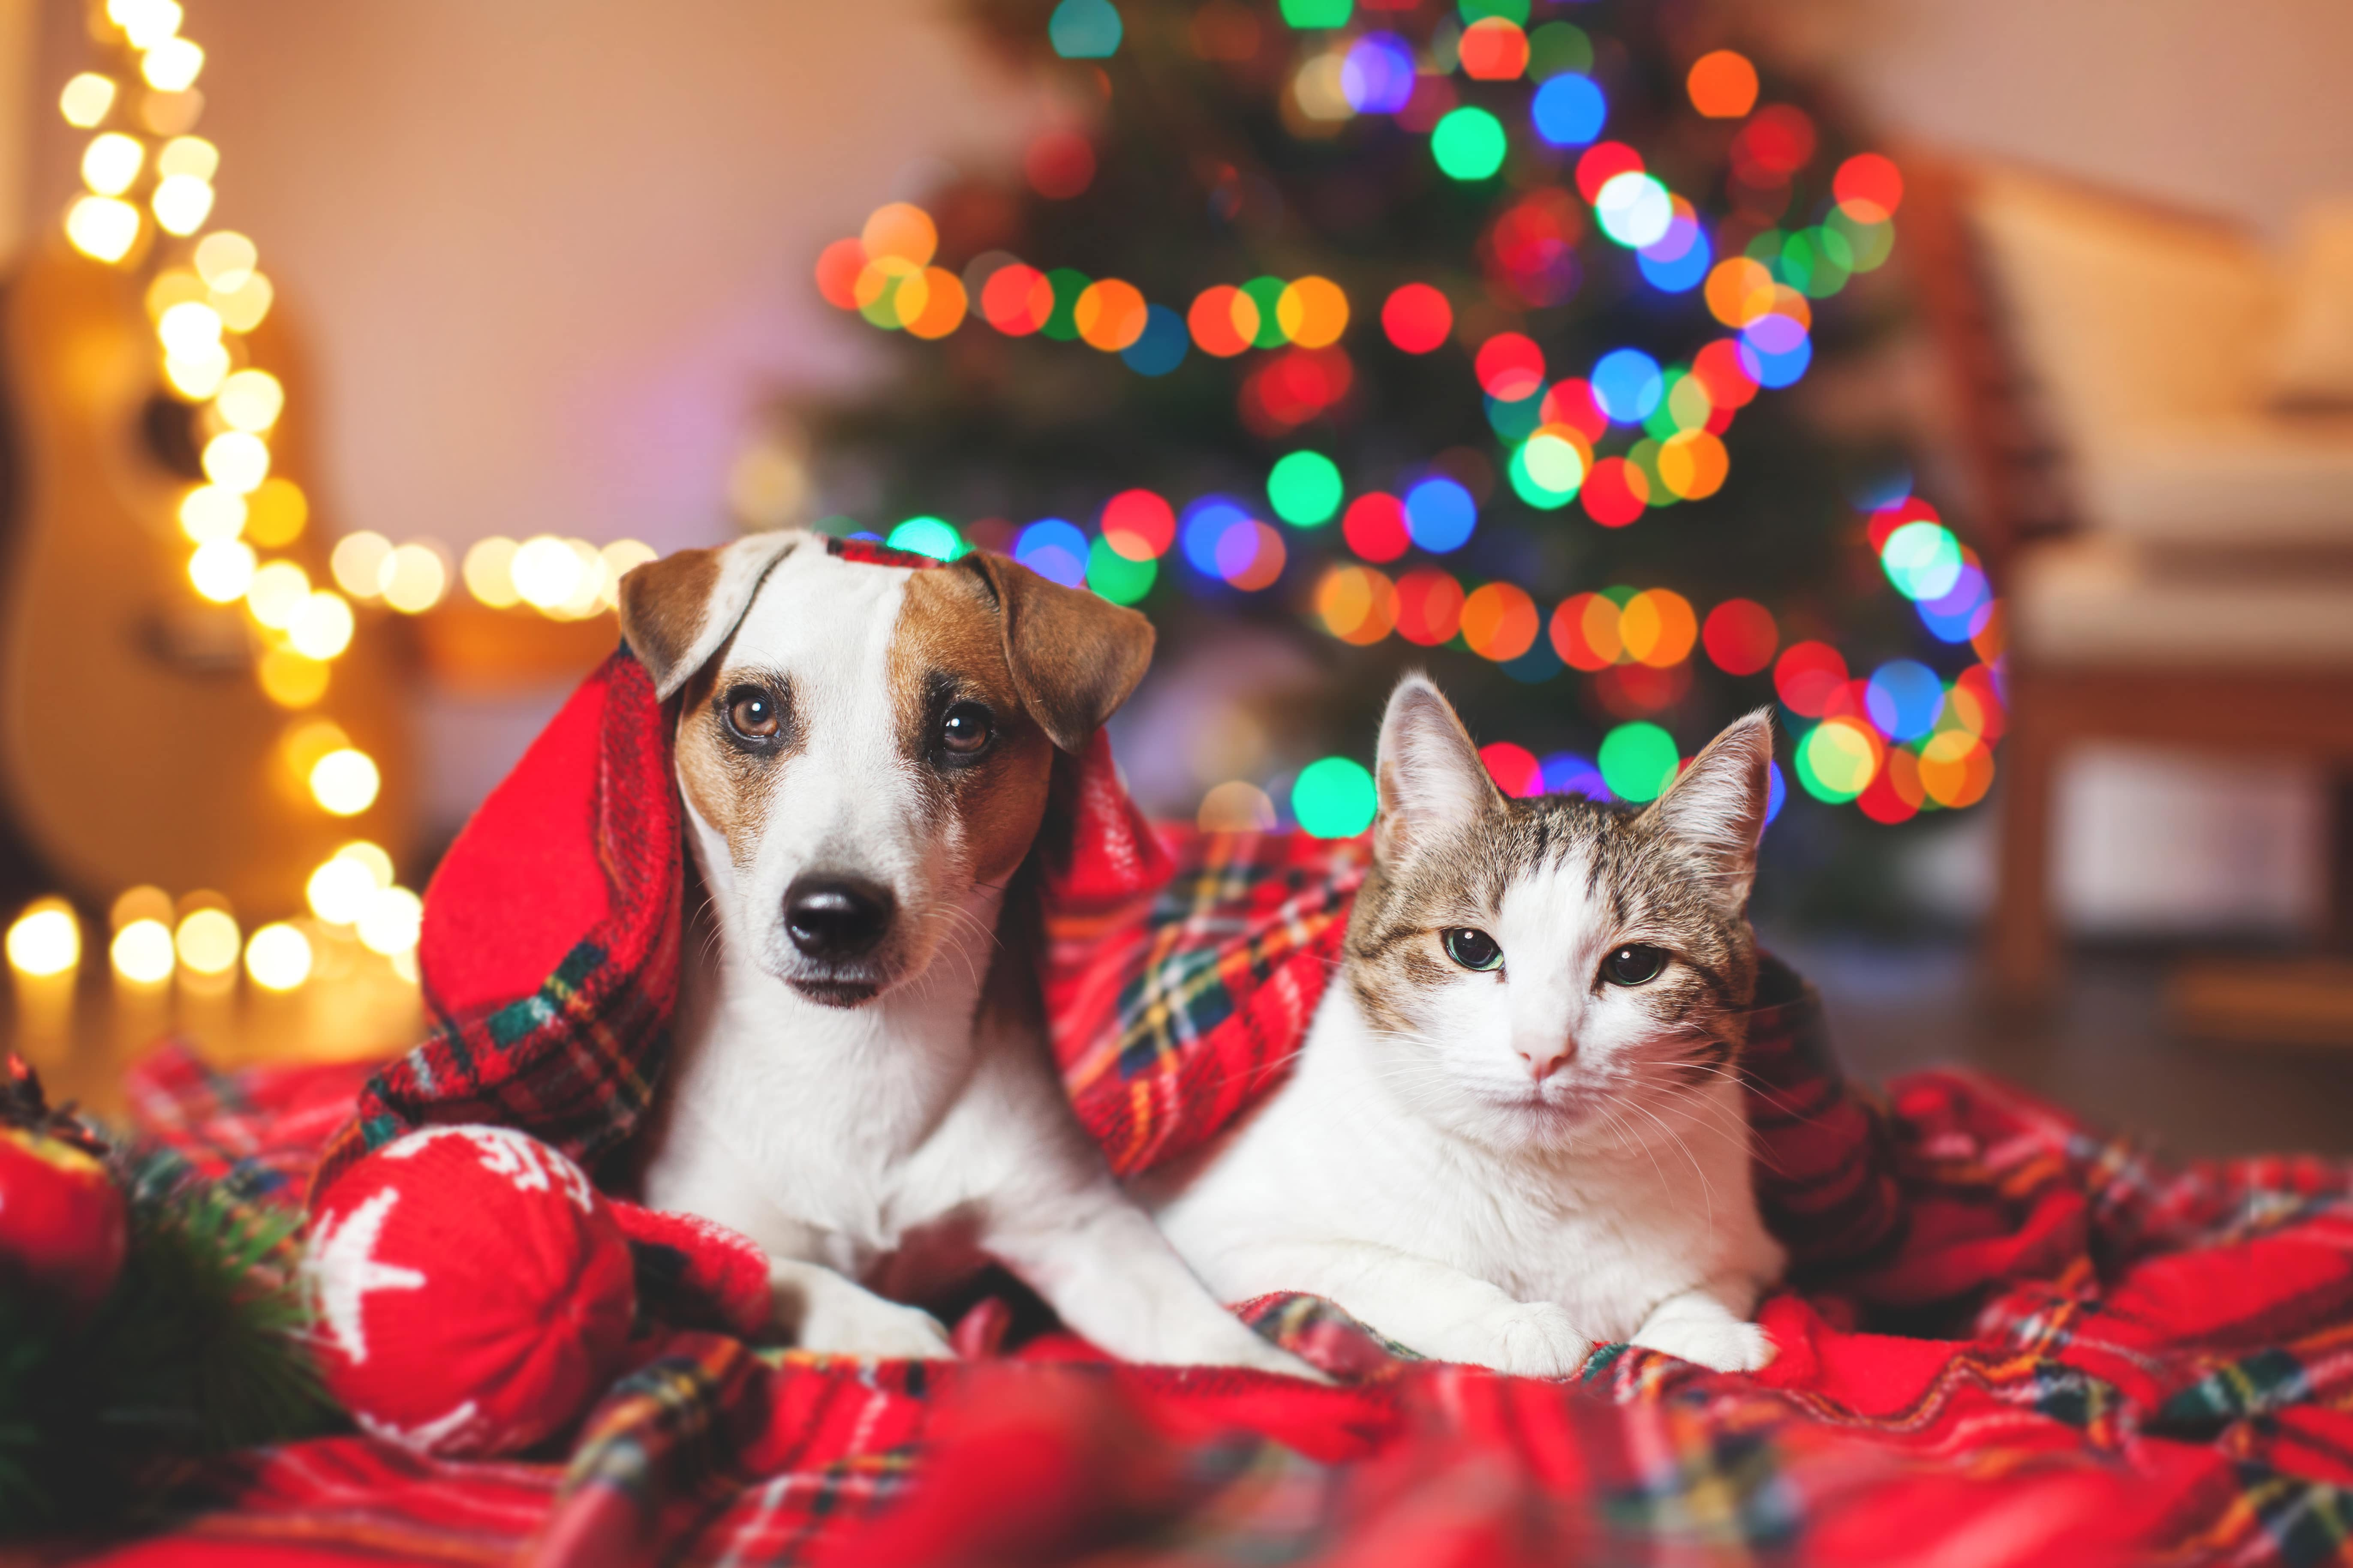 Pets safe over the holidays